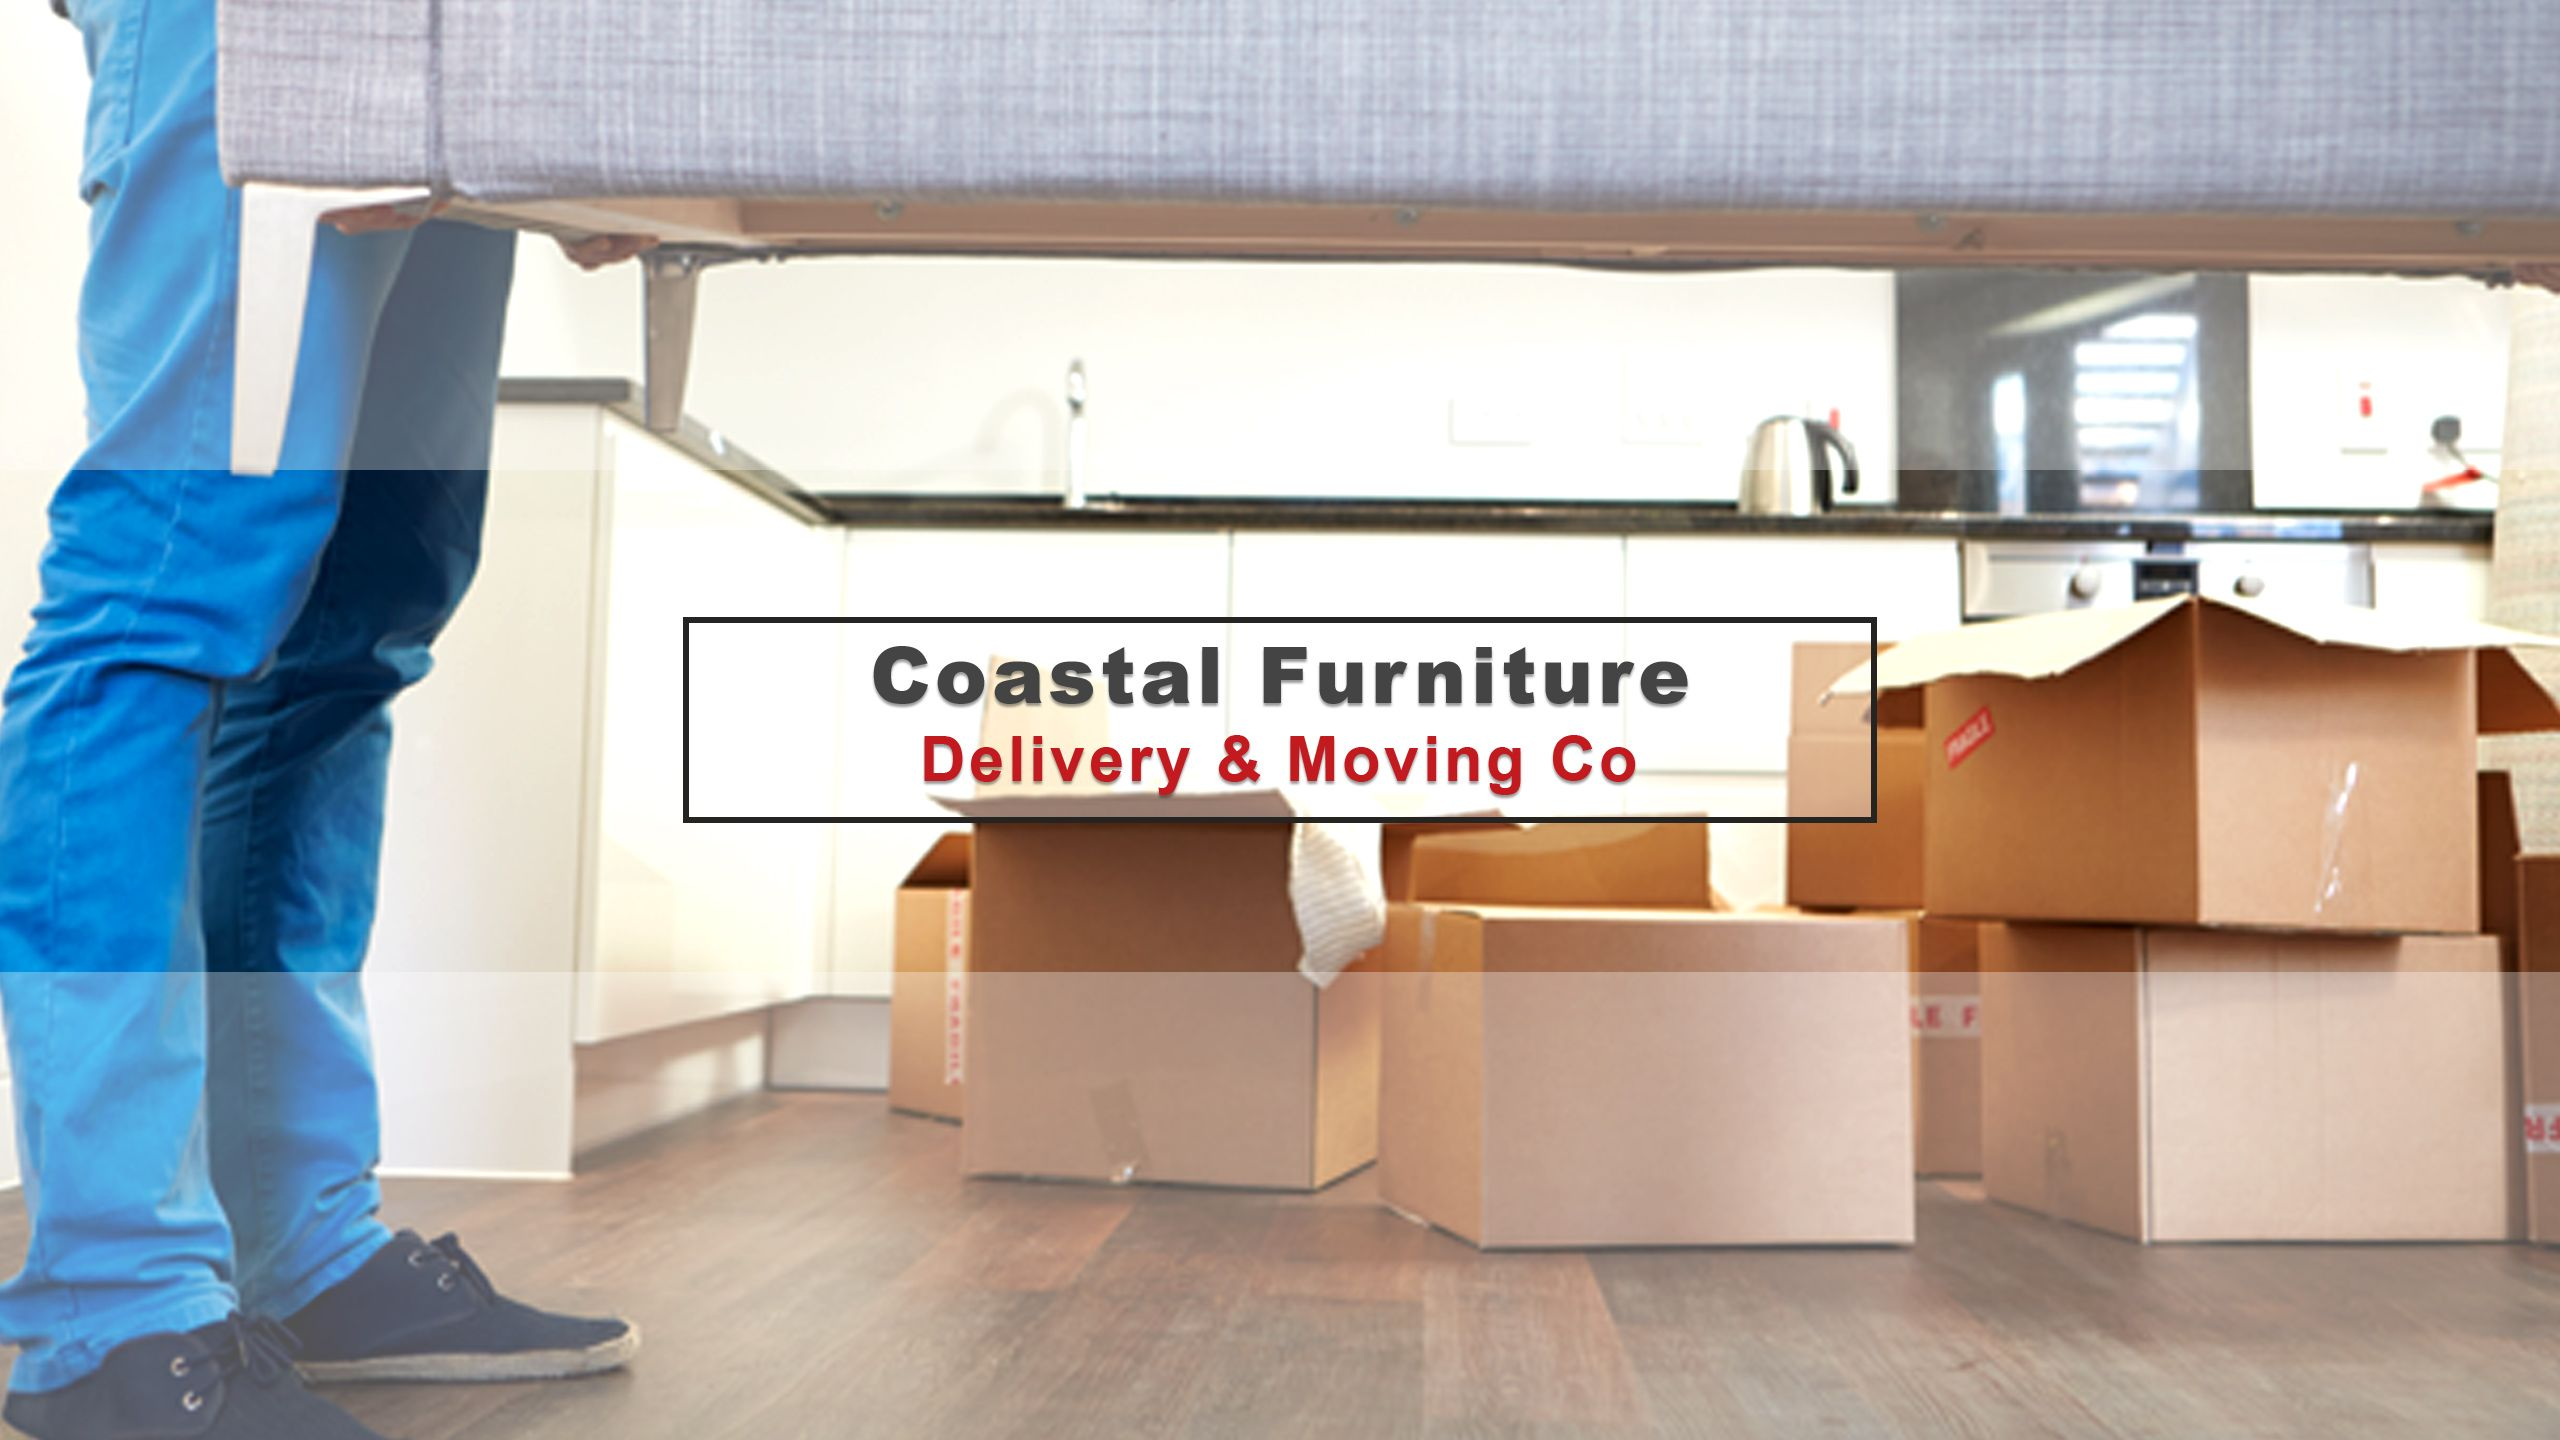 Coastal Furniture Delivery & Moving Co proudly serves all of